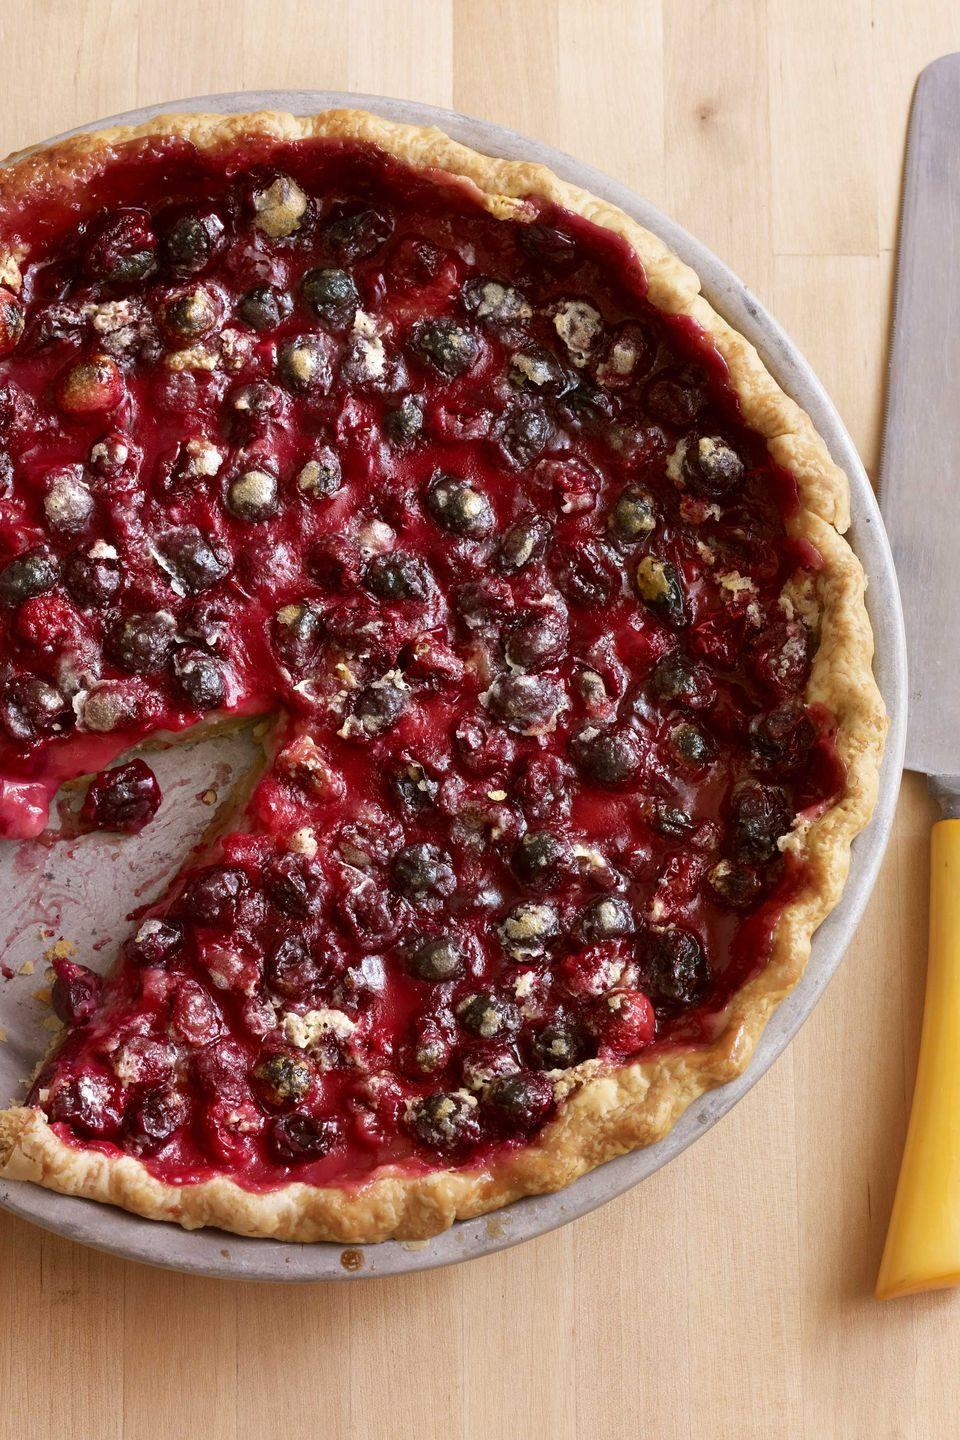 """<p>Six simple ingredients are all you need to create this holiday dessert.</p><p><strong><a href=""""https://www.countryliving.com/food-drinks/recipes/a3485/cranberry-pie-recipe-clv1110/"""" rel=""""nofollow noopener"""" target=""""_blank"""" data-ylk=""""slk:Get the recipe"""" class=""""link rapid-noclick-resp"""">Get the recipe</a>.</strong></p>"""